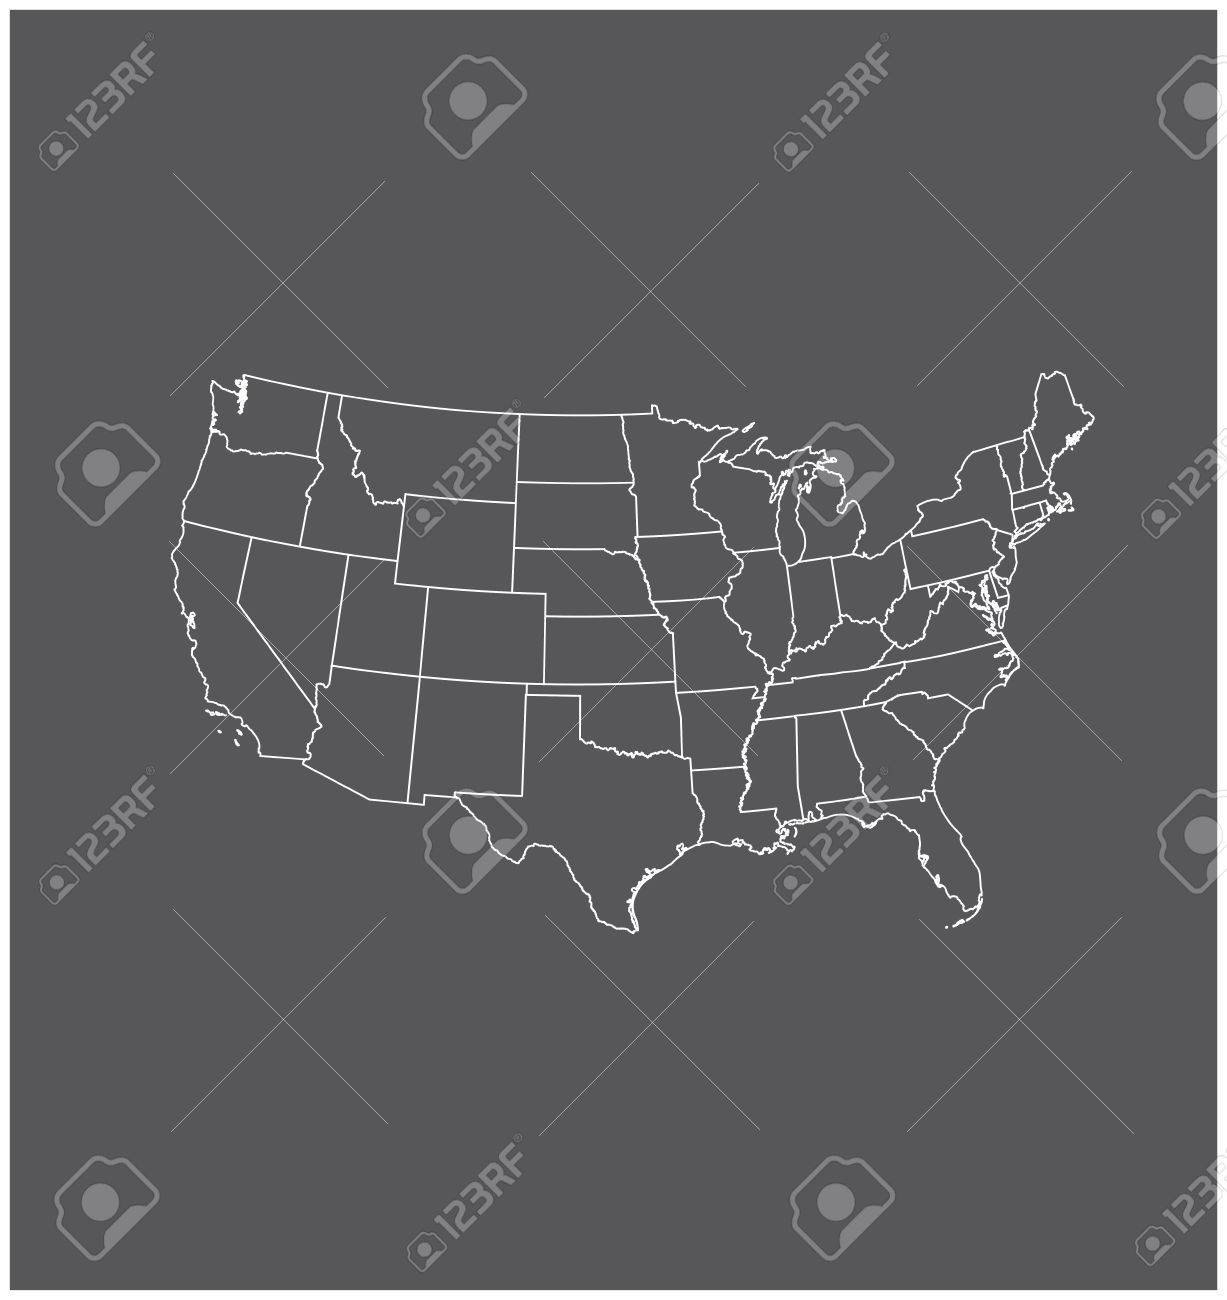 United States Map Outline Vector In Gray Background Royalty Free ...